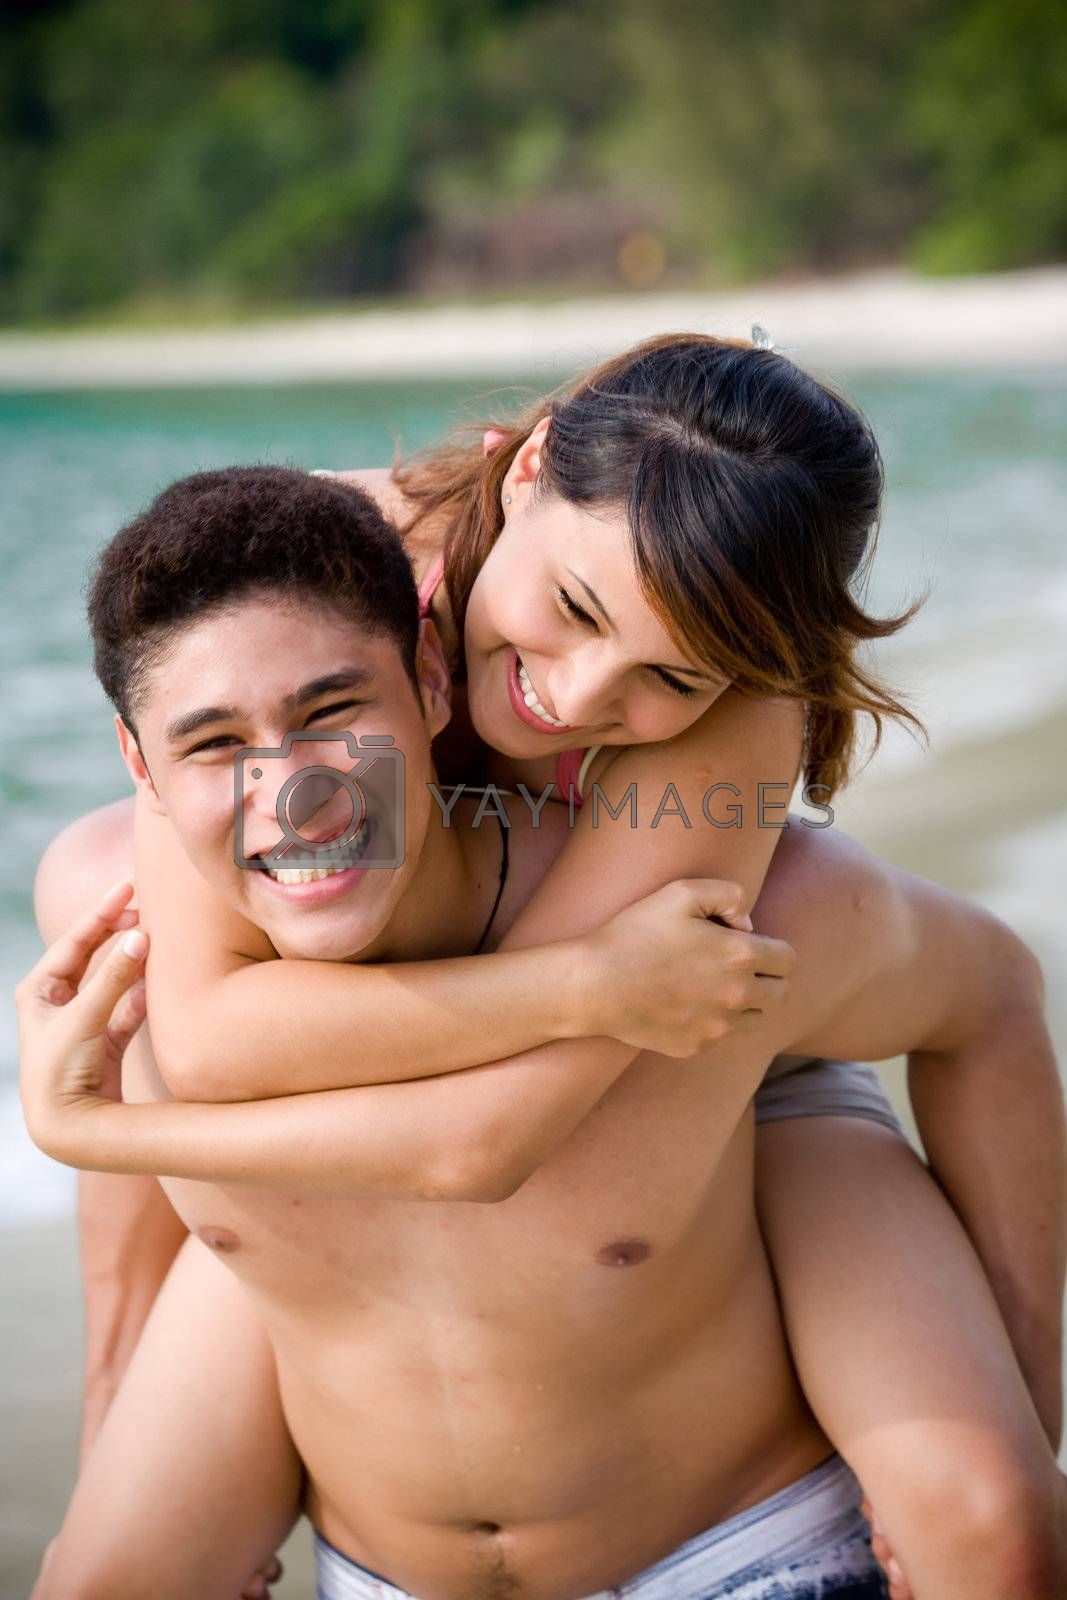 Royalty free image of Happy couple by eyedear